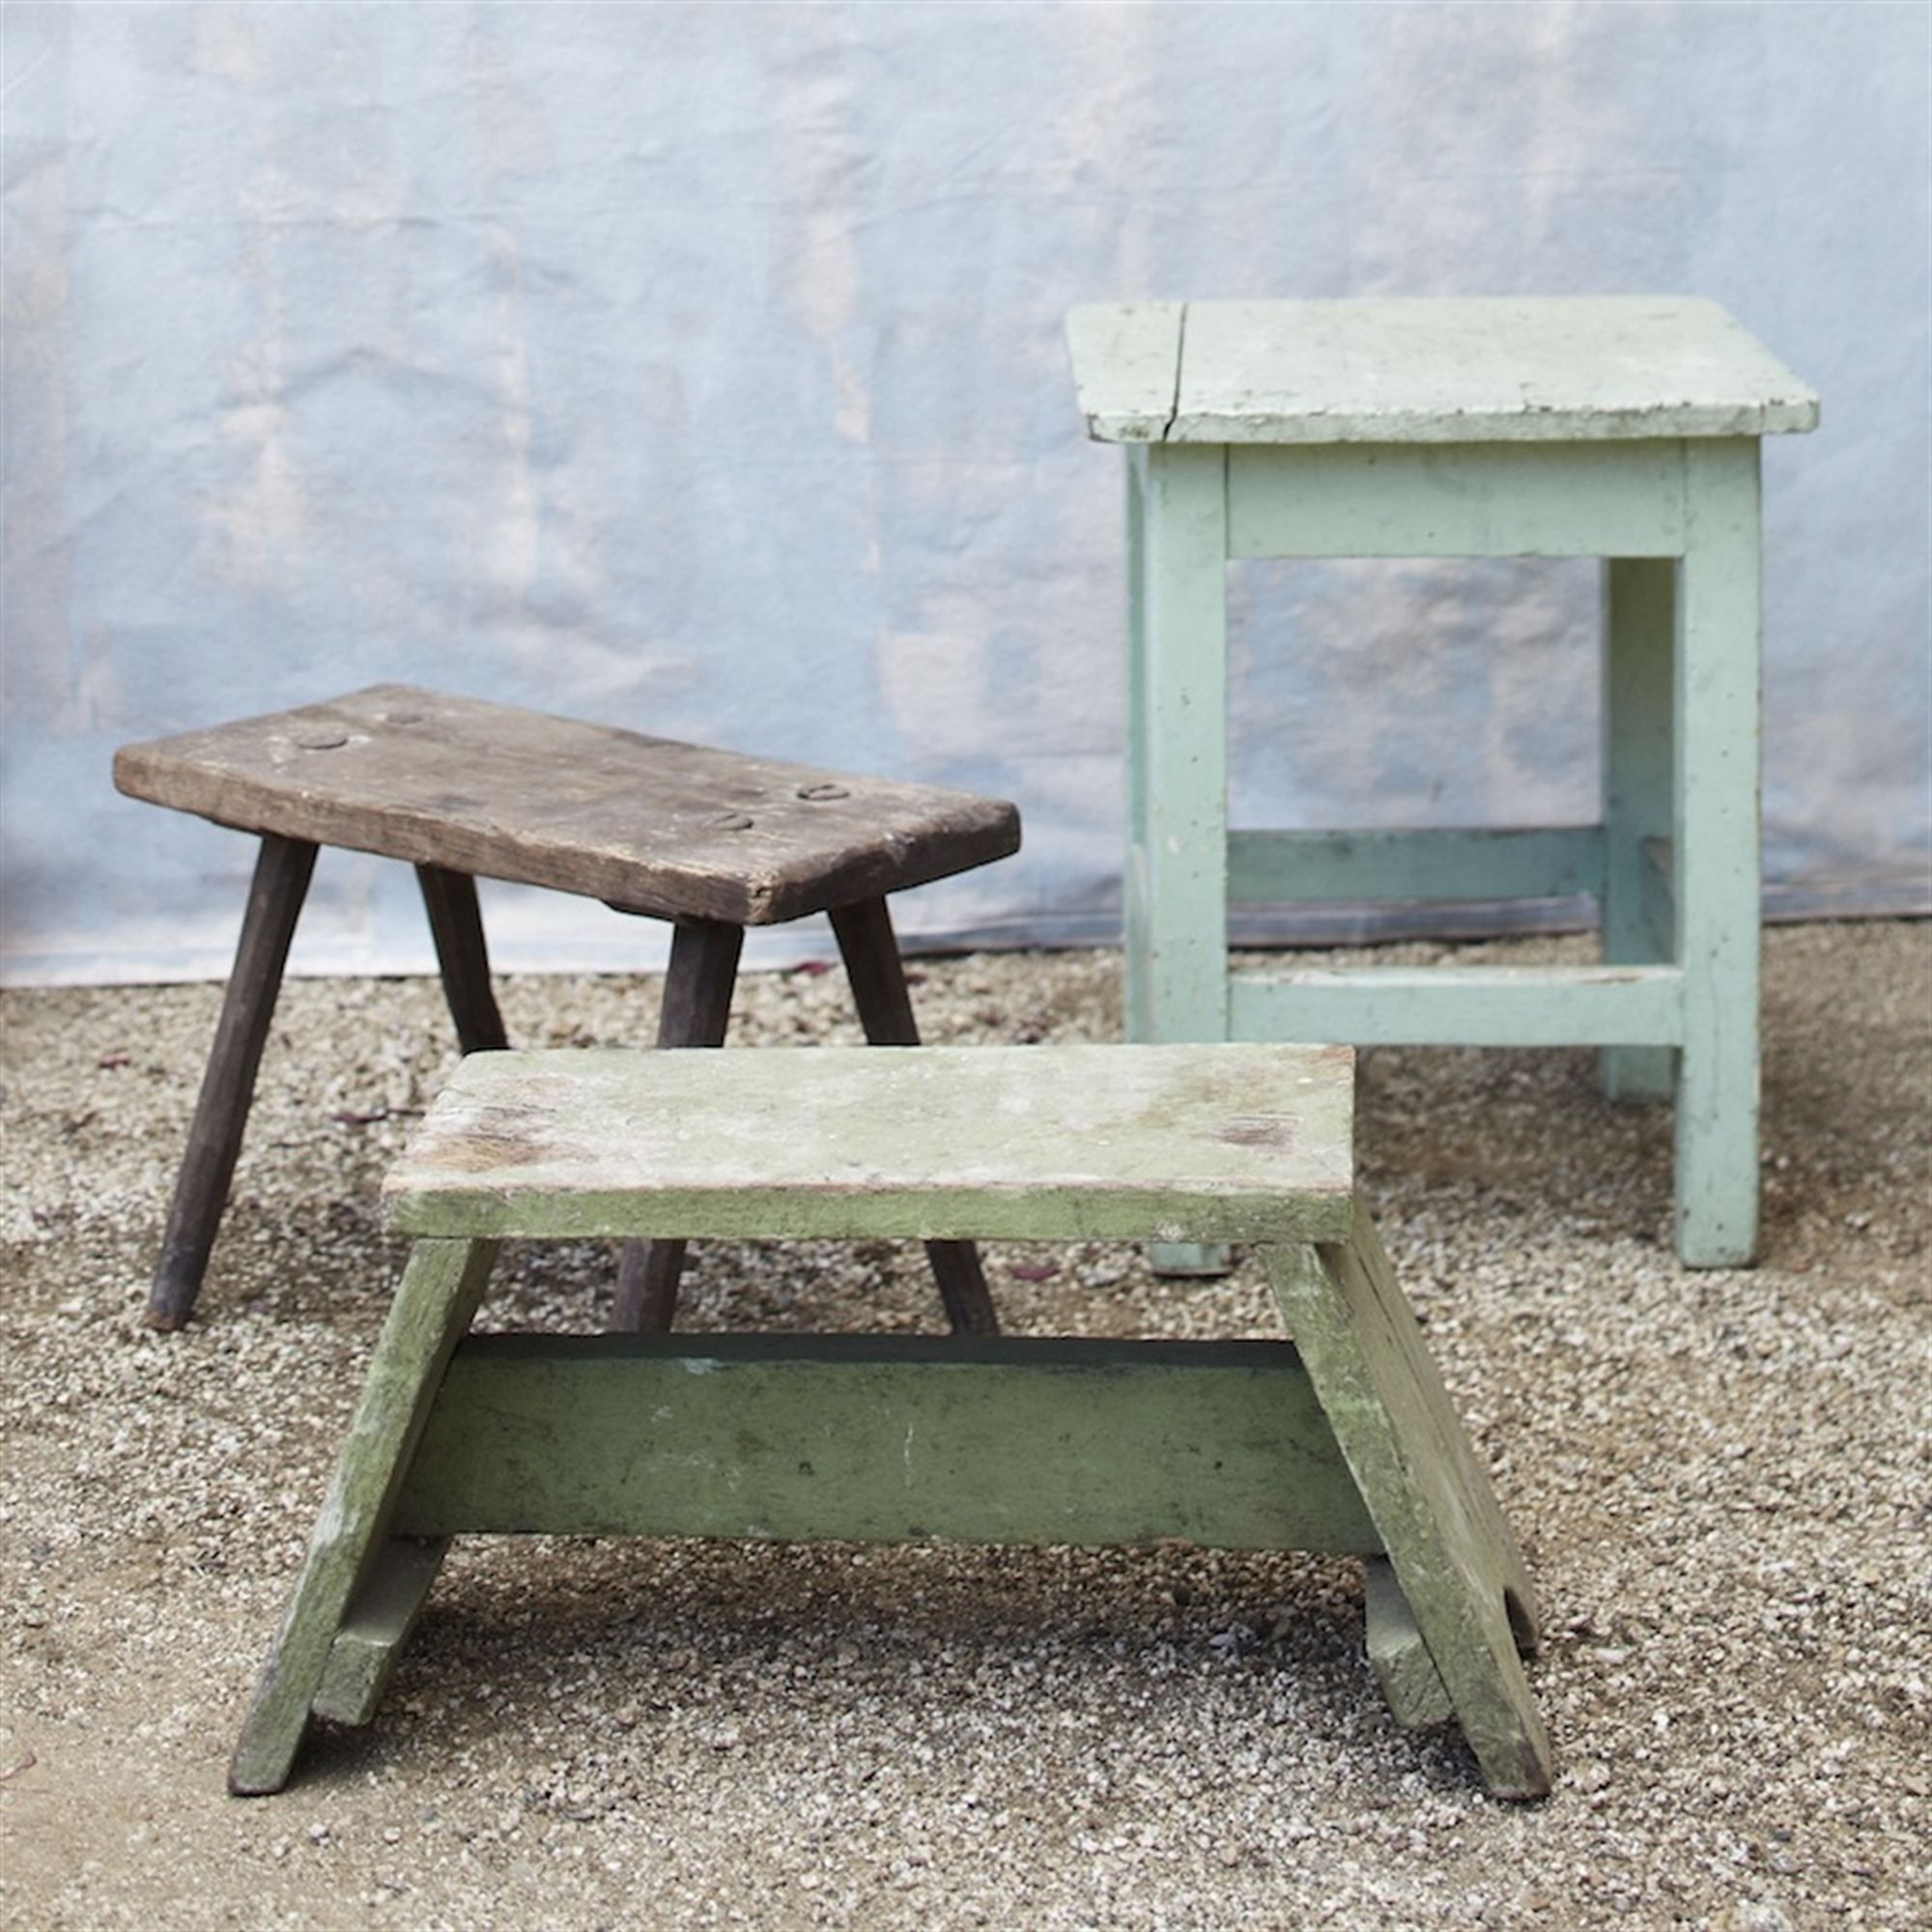 Wondrous The Unpainted Stool Is 18 Long By 7 Deep By 11 High Machost Co Dining Chair Design Ideas Machostcouk